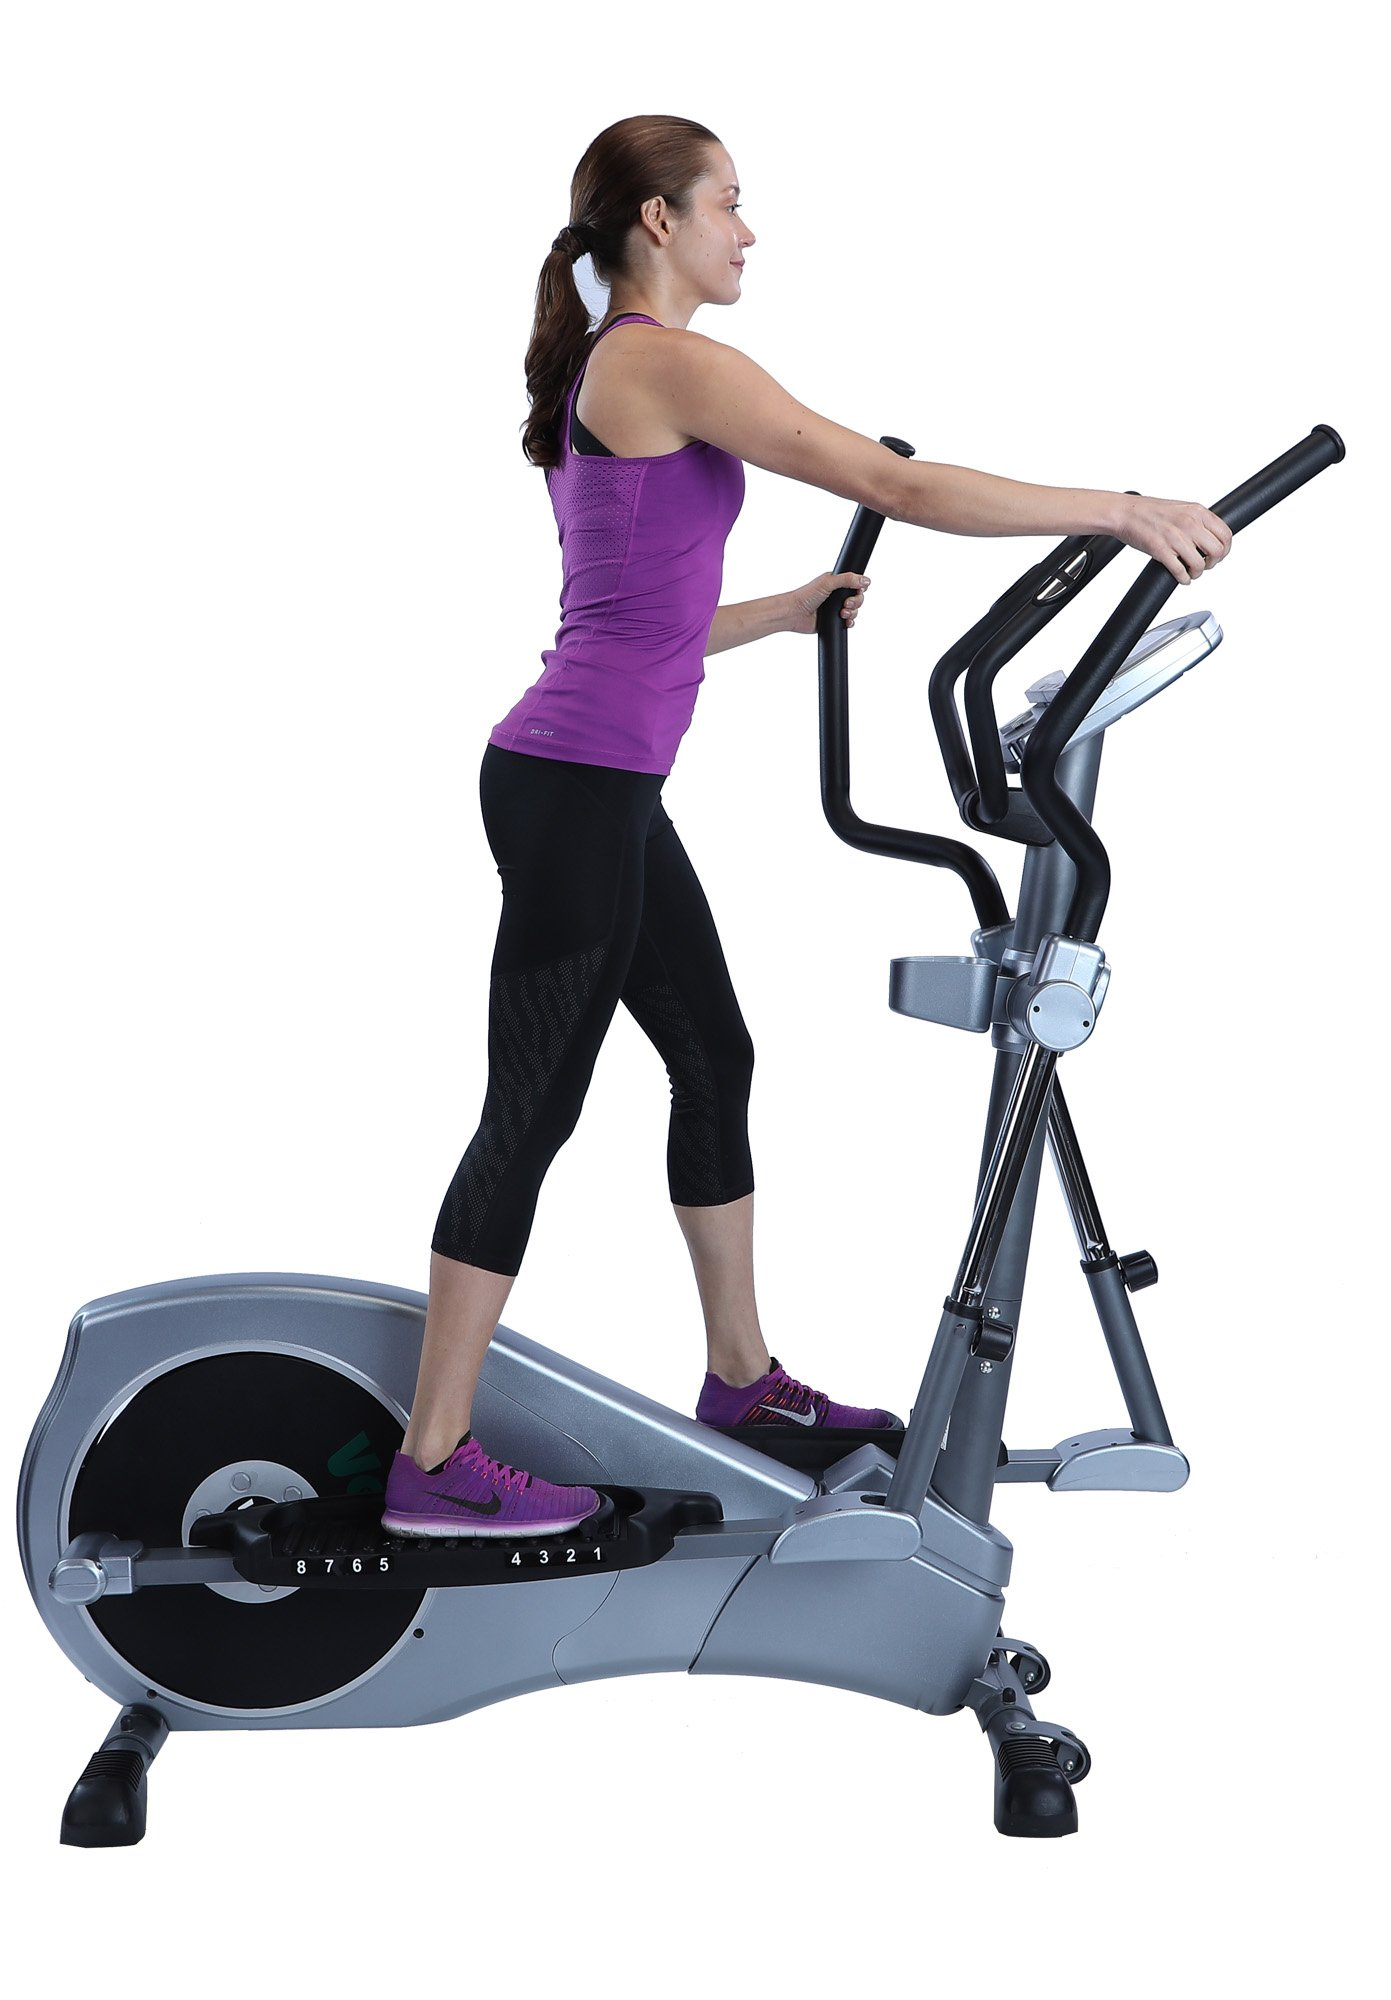 V-450 Standard Stride 17'' Elliptical Exercise Cross Trainer Machine with Adjustable Arms and Pedals and HRC Control Program for Cardio Fitness Strength Conditioning Workout at Home or Gym